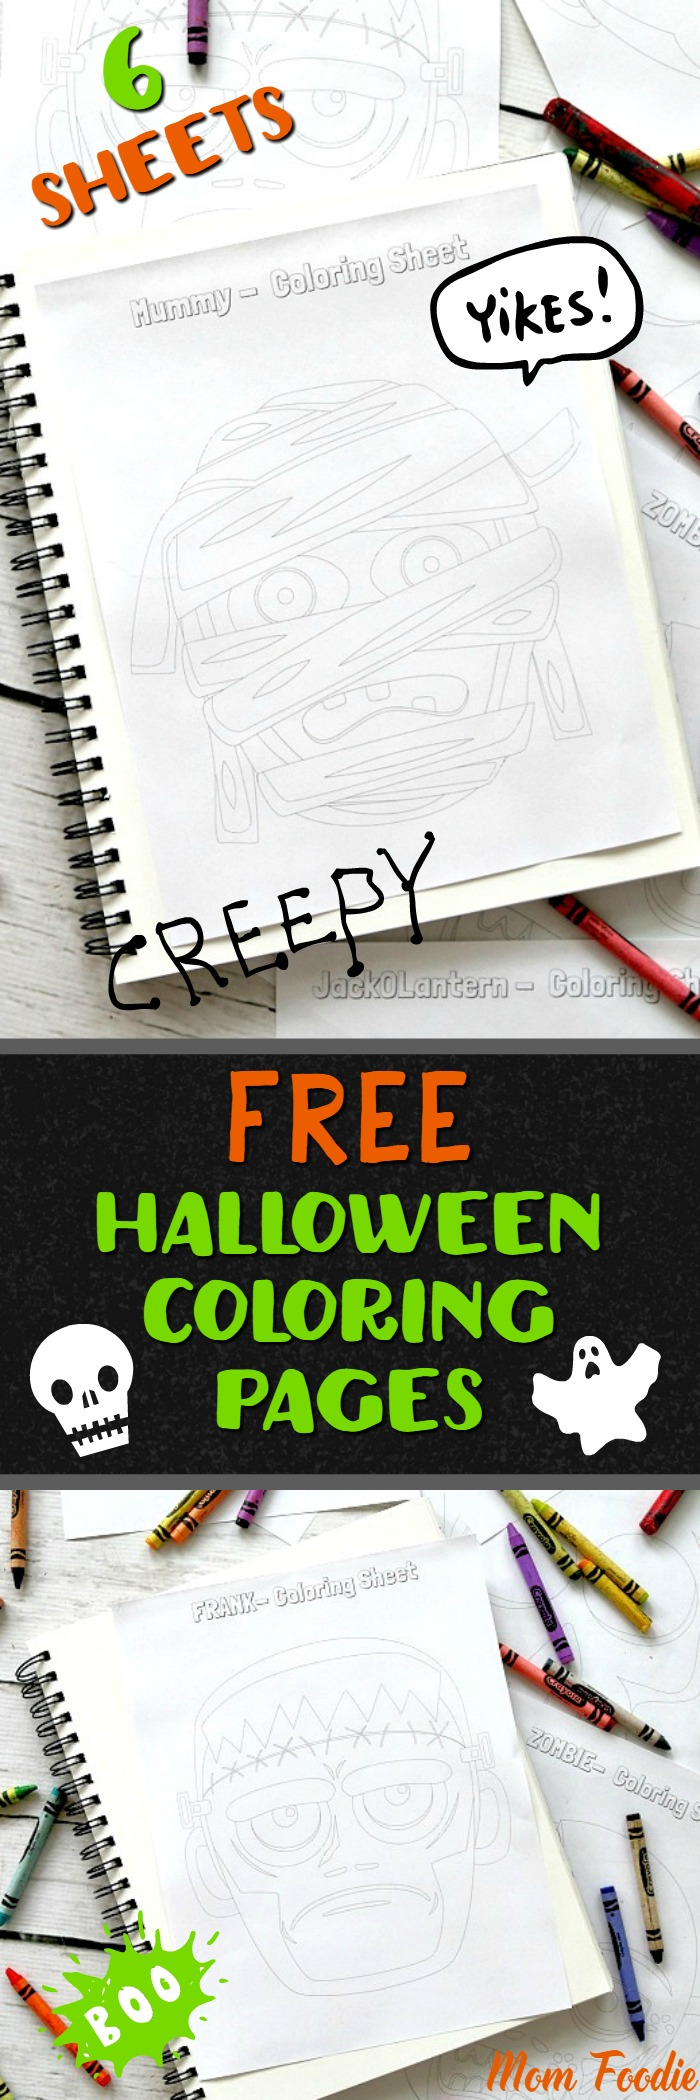 Halloween Coloring Pages: 6 Free printable Halloween Character sheets